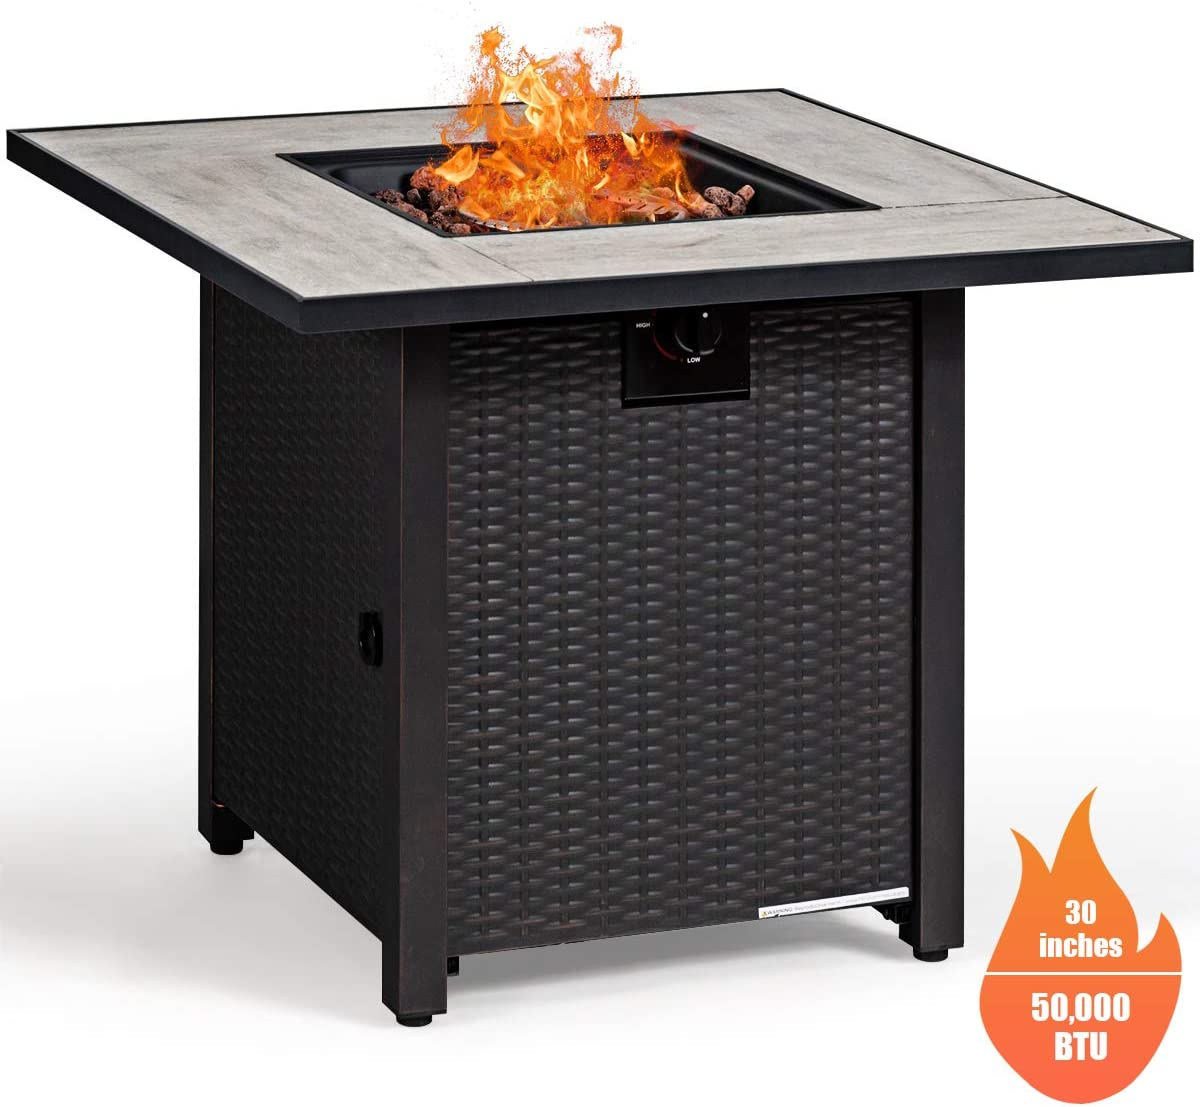 SUNCOO Smokeless Fire Pit 20 Inch Stainless Steel Bonfire, Wood Burning Firepit with Detachable Grill, Adjustable Air Inlet for Outdoor Campfire, Backyard, No Gas or Propane Required